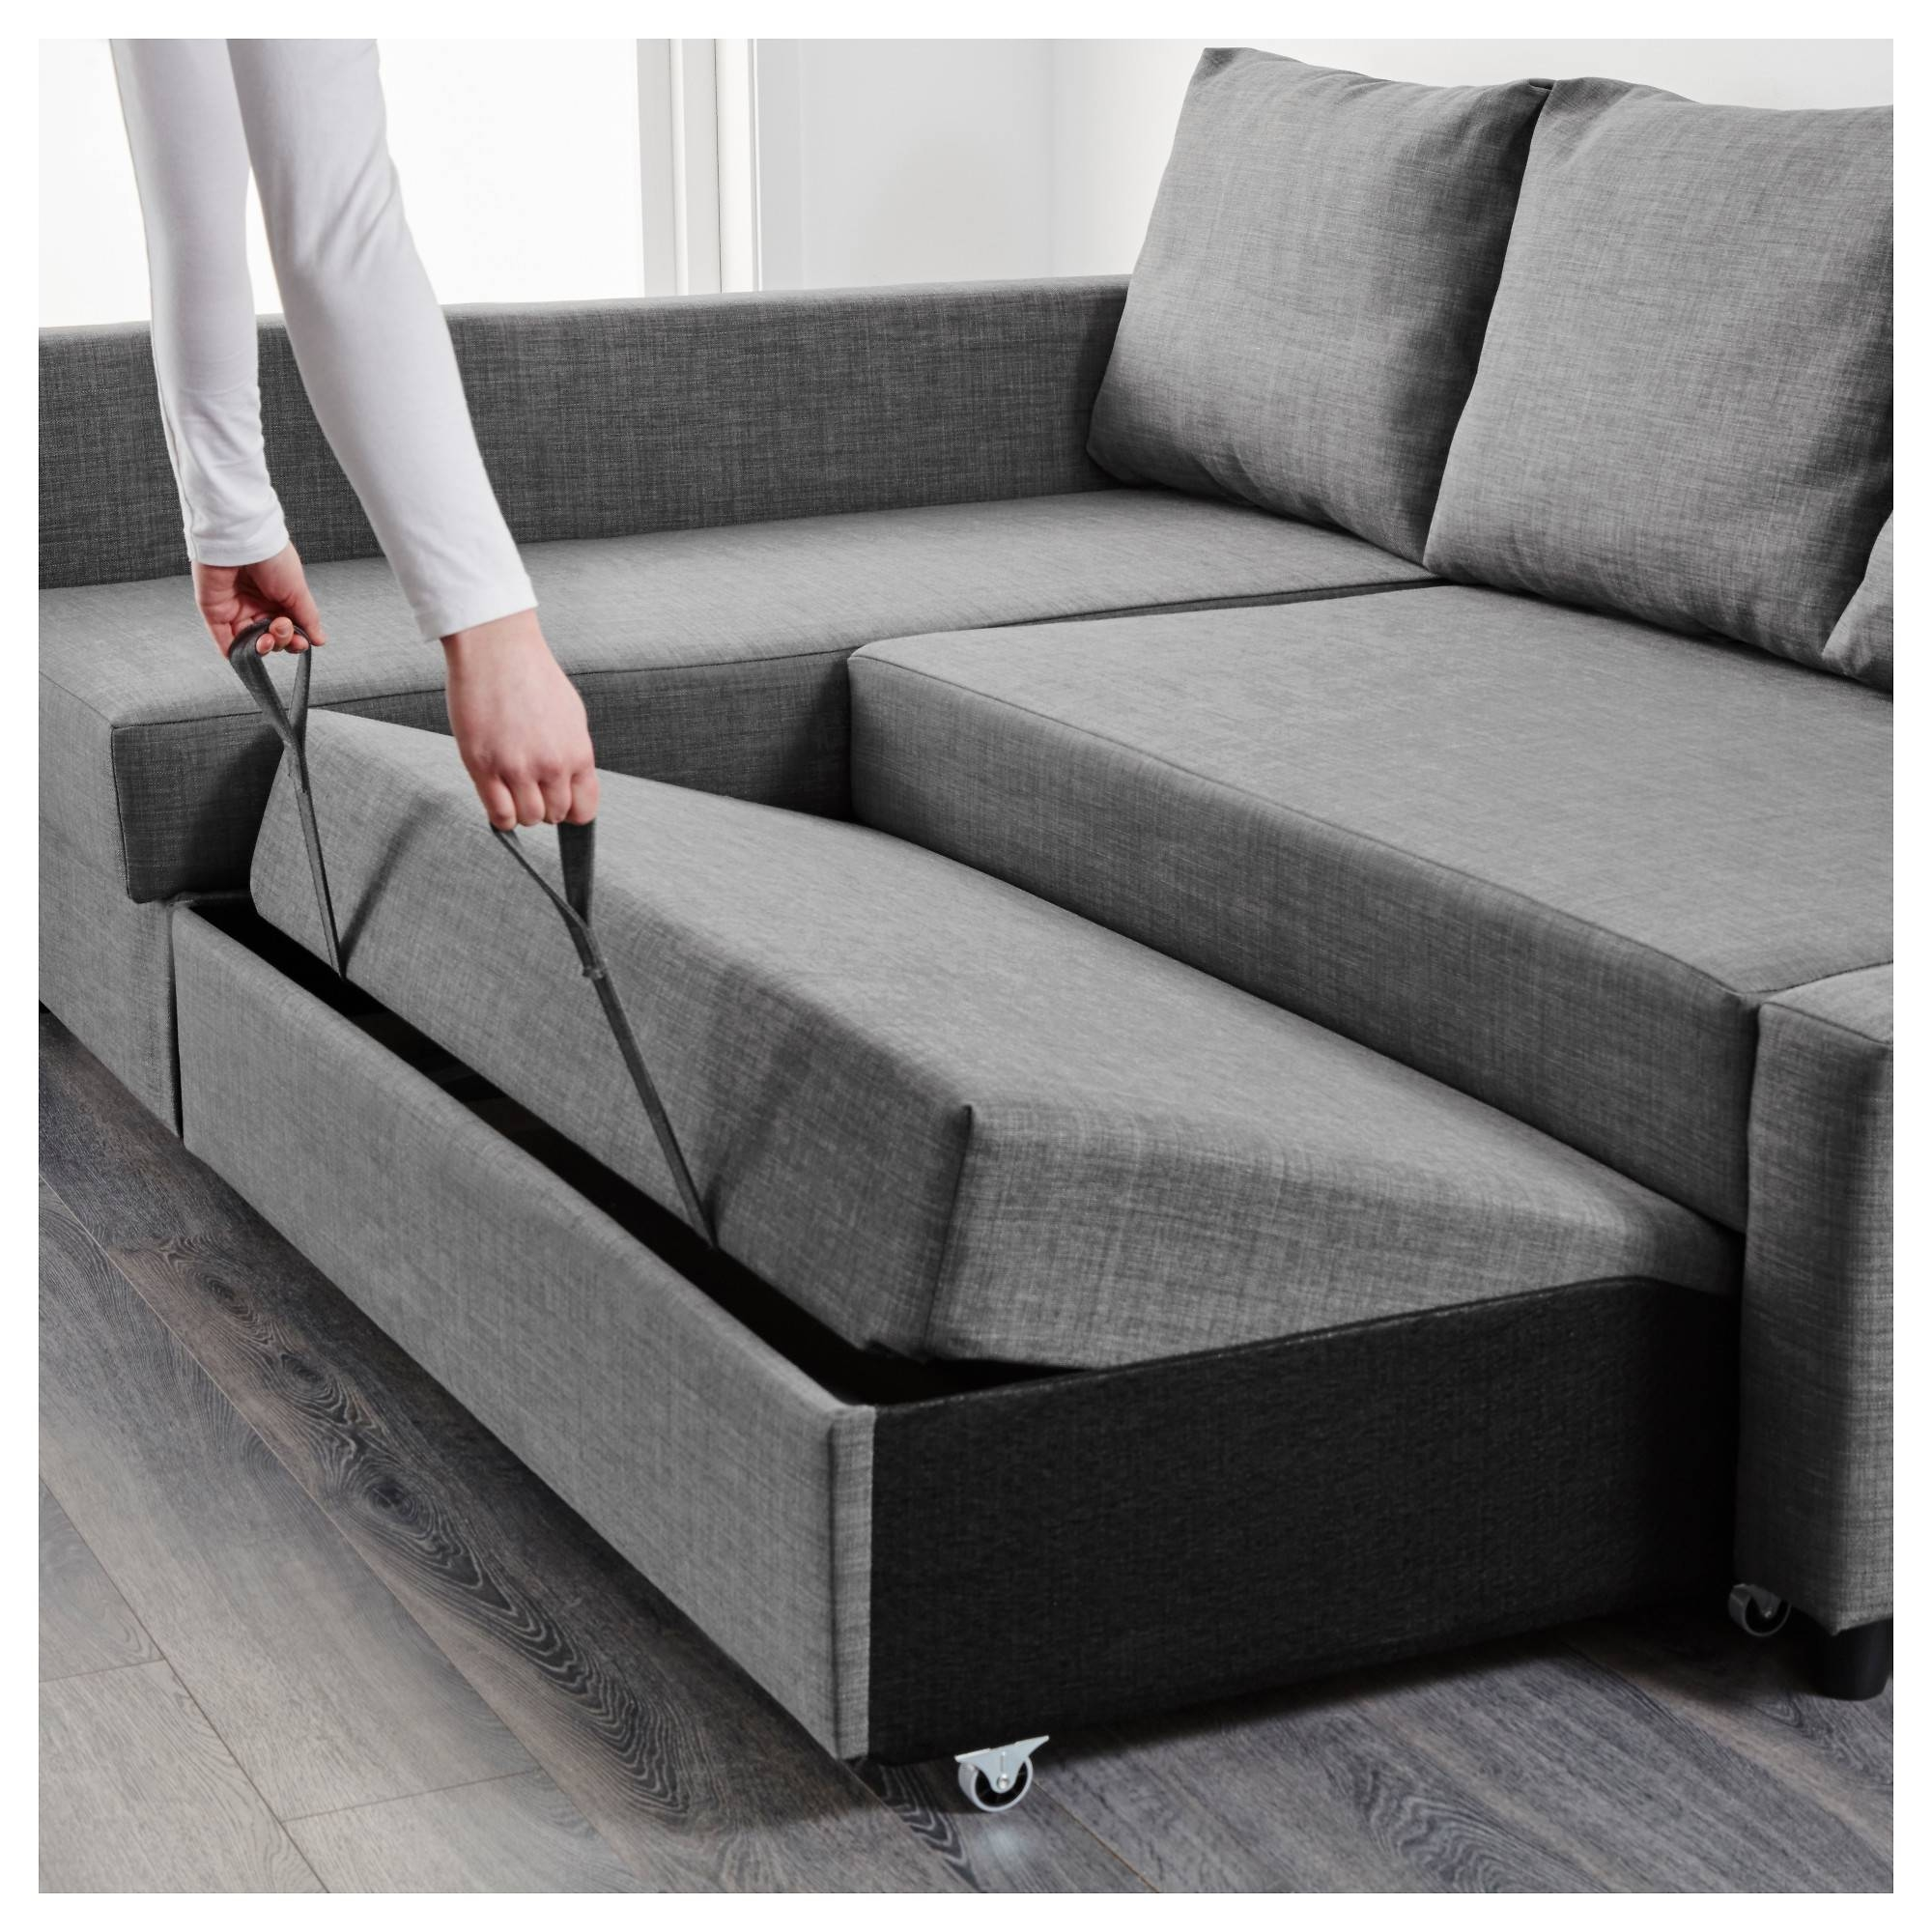 Friheten Corner Sofa-Bed With Storage Skiftebo Dark Grey - Ikea inside Chaise Longue Sofa Beds (Image 7 of 15)